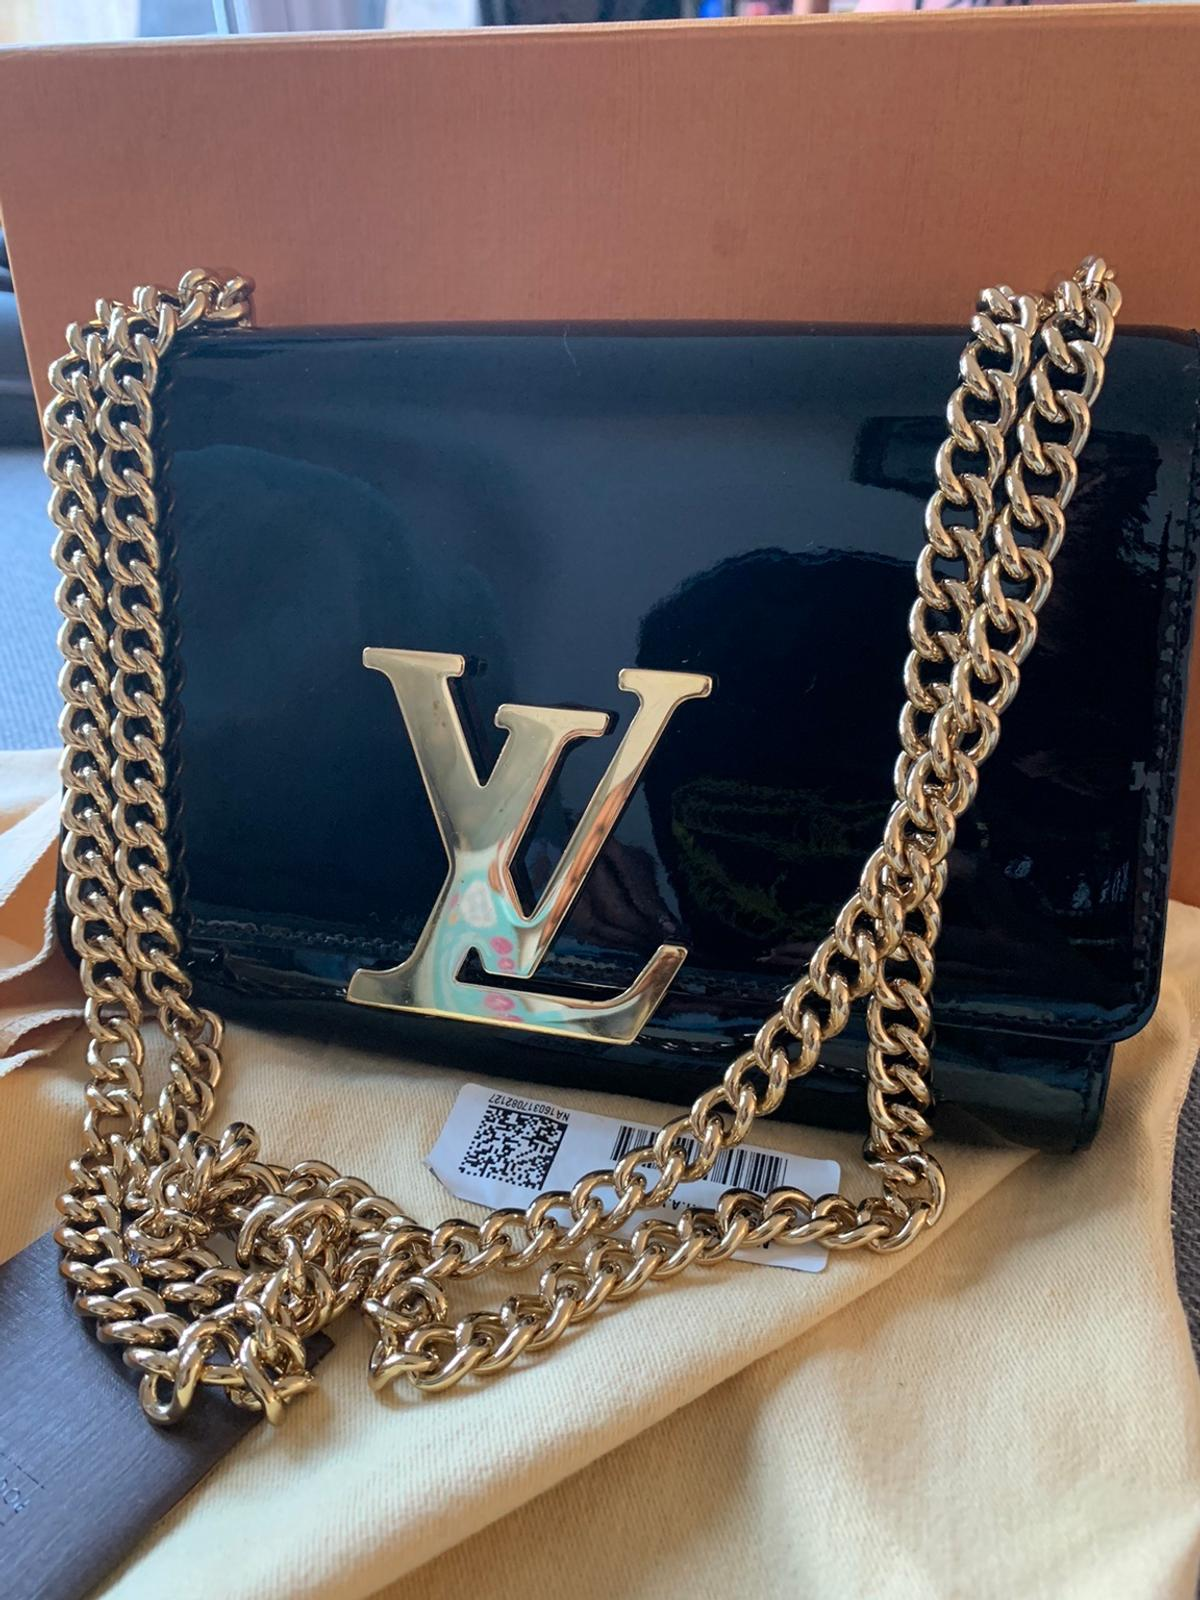 Used Louis Vuitton bag. In great condition. Can't prove authenticity as I don't have receipt. Seller didn't send one. Batch no is inside. Kept in box when not in used and well looked after.